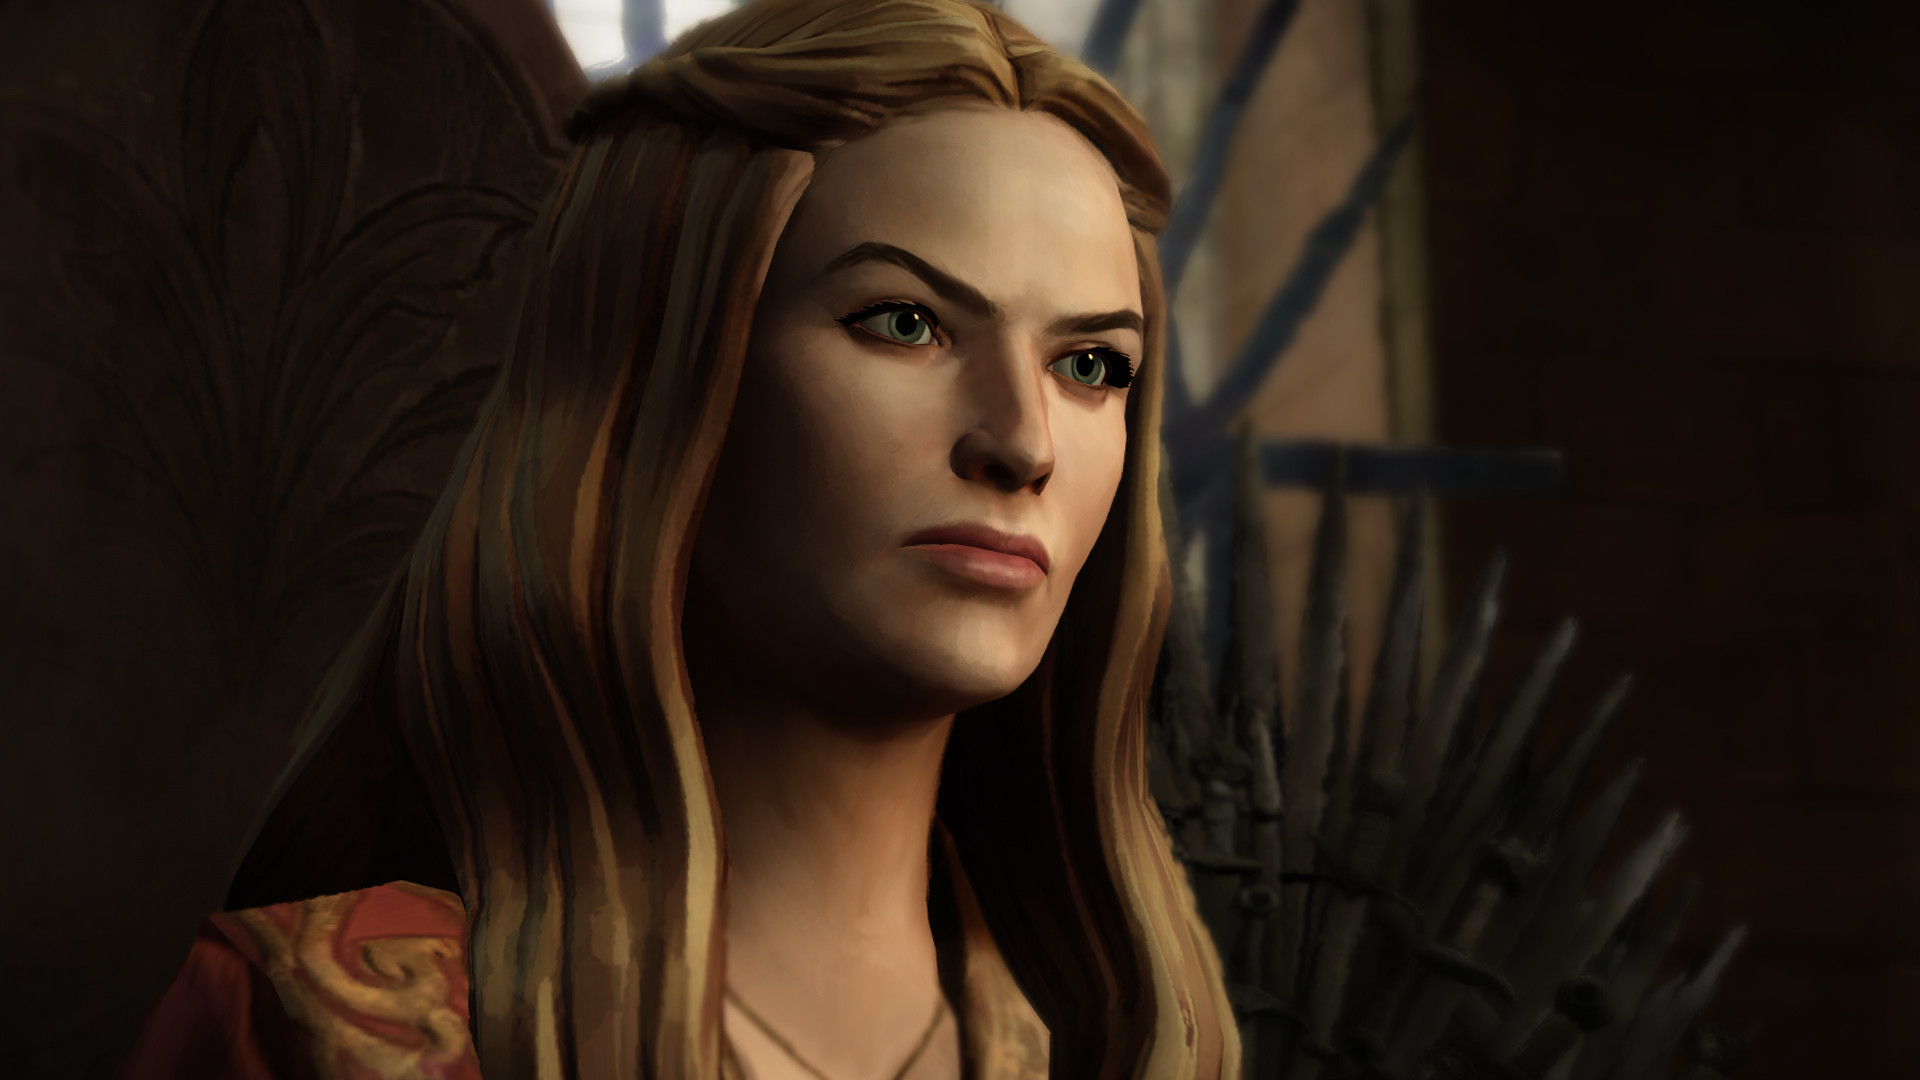 Game Of Thrones: Episode One (PC) - not as humorous as Borderlands (obviously)